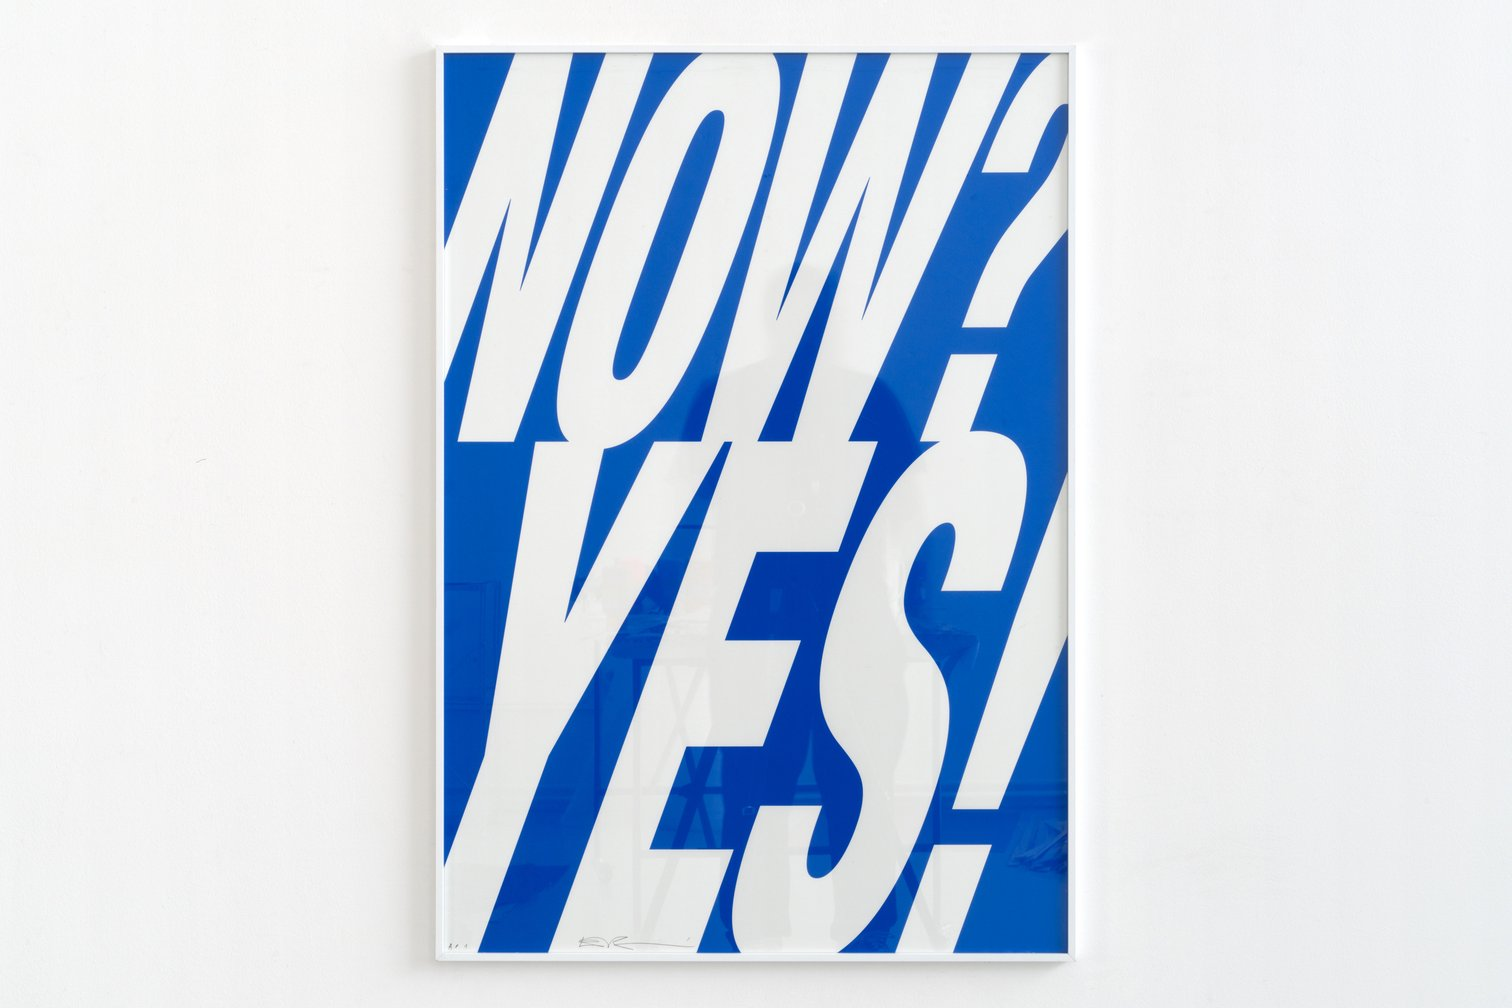 Eike König - NOW? YES!